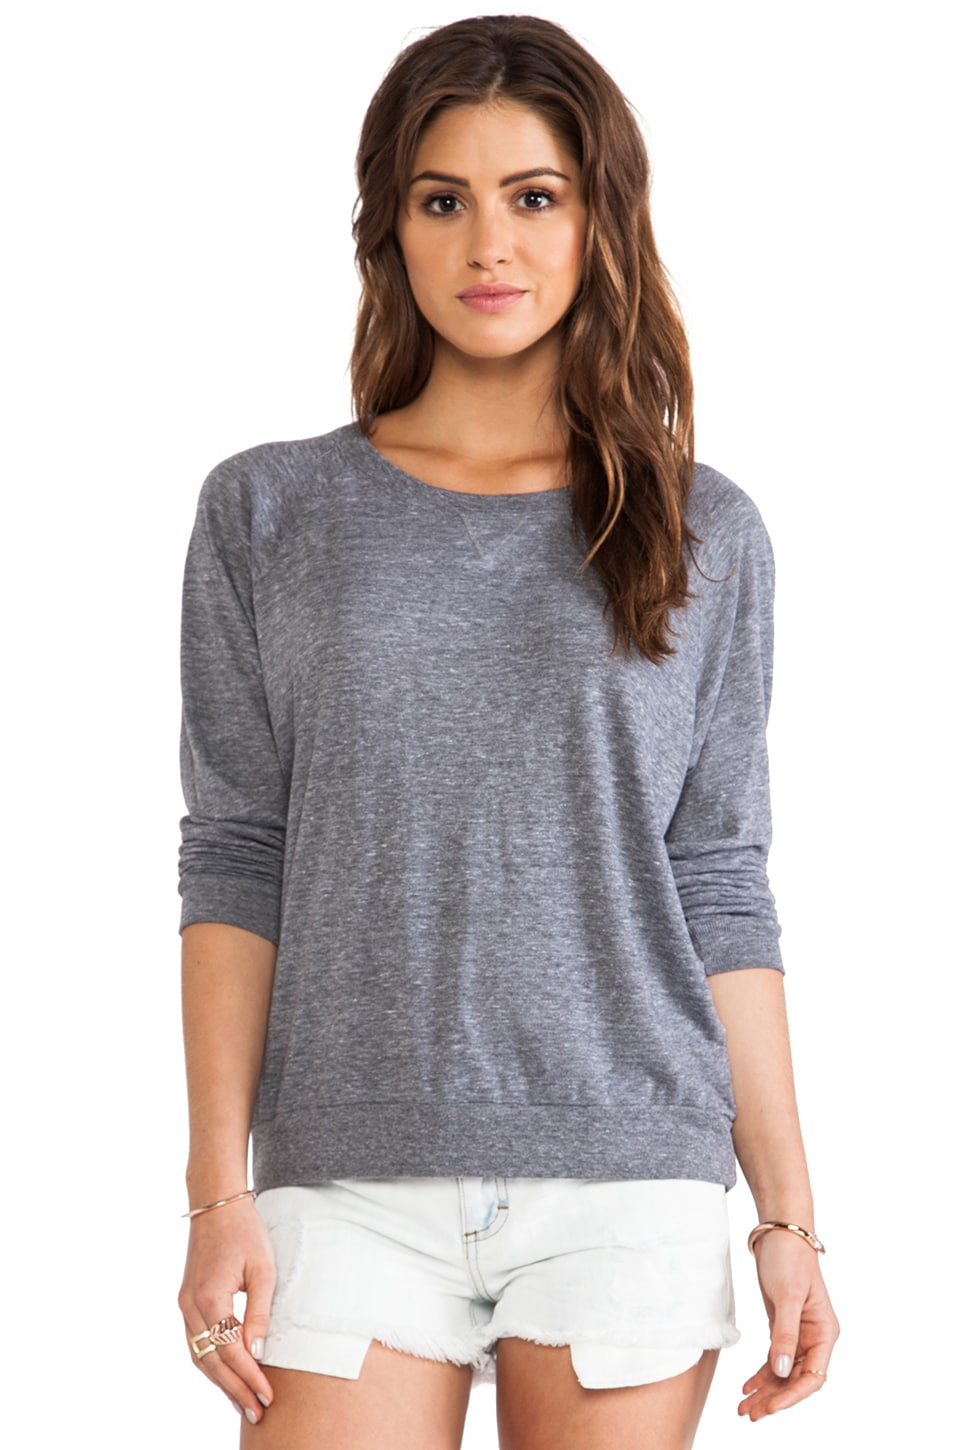 Nation LTD Heather Raglan Sweatshirt in Heather Gray